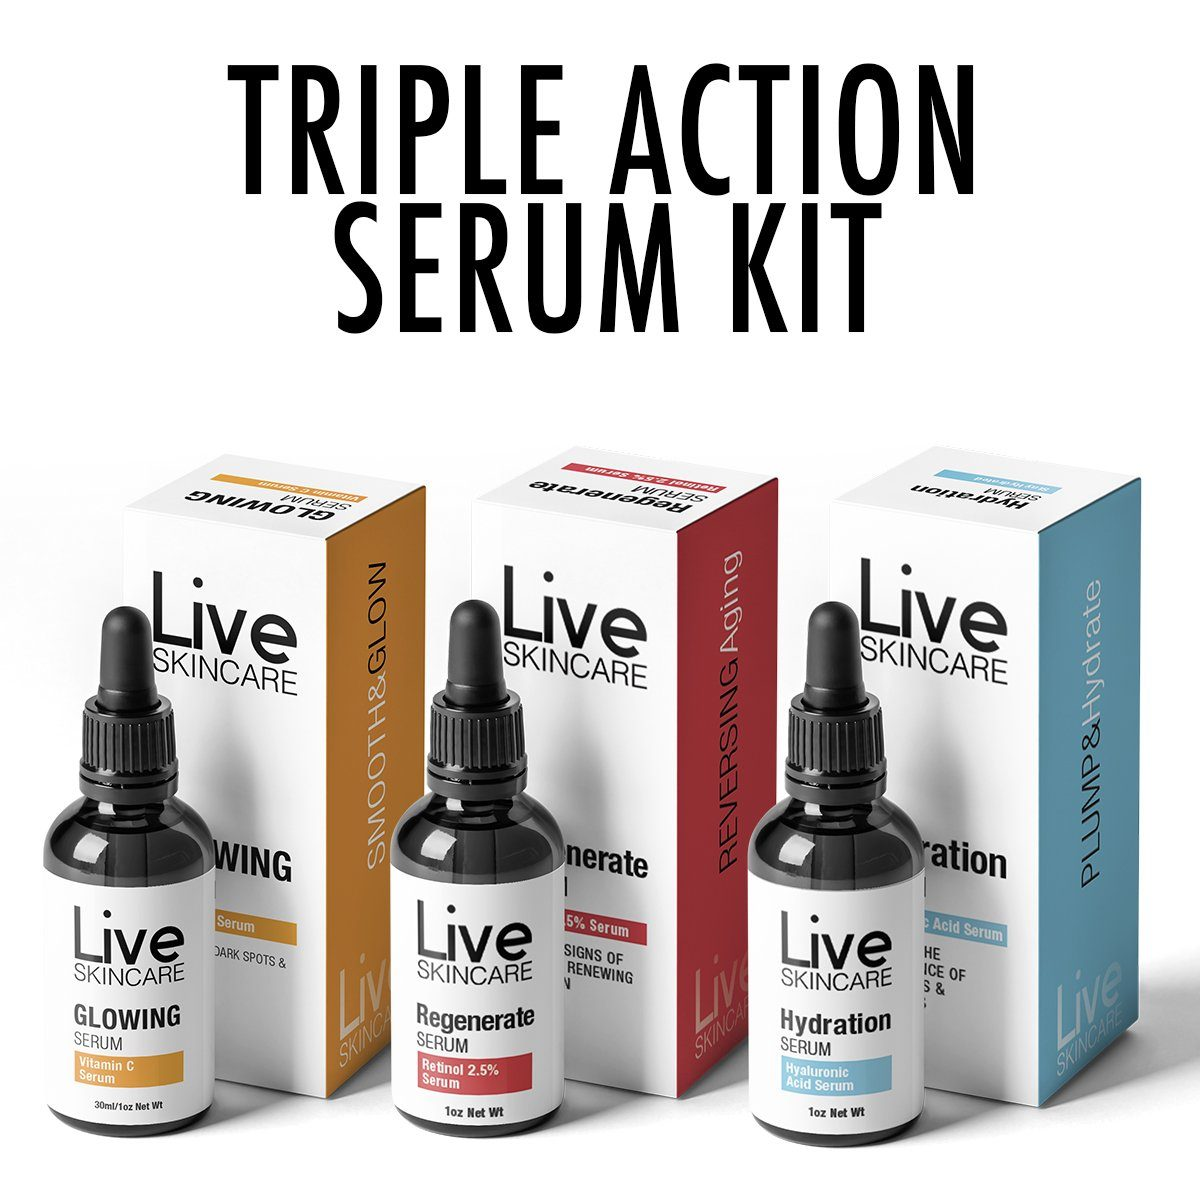 Triple Action Serum Kit (Removes Wrinkles & Actively Fights Ageing)